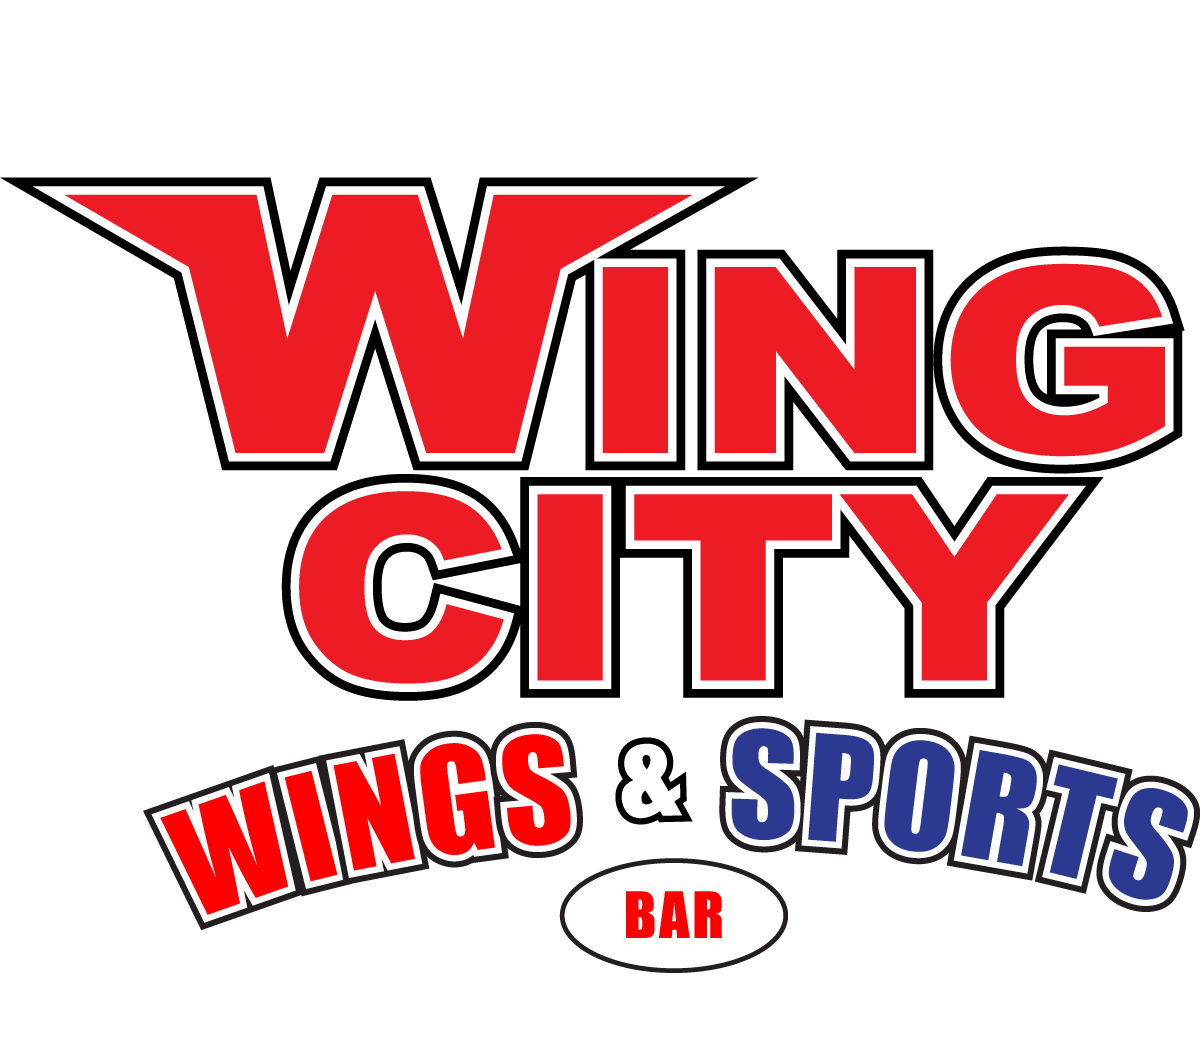 Wing City Wings & Sports Bar